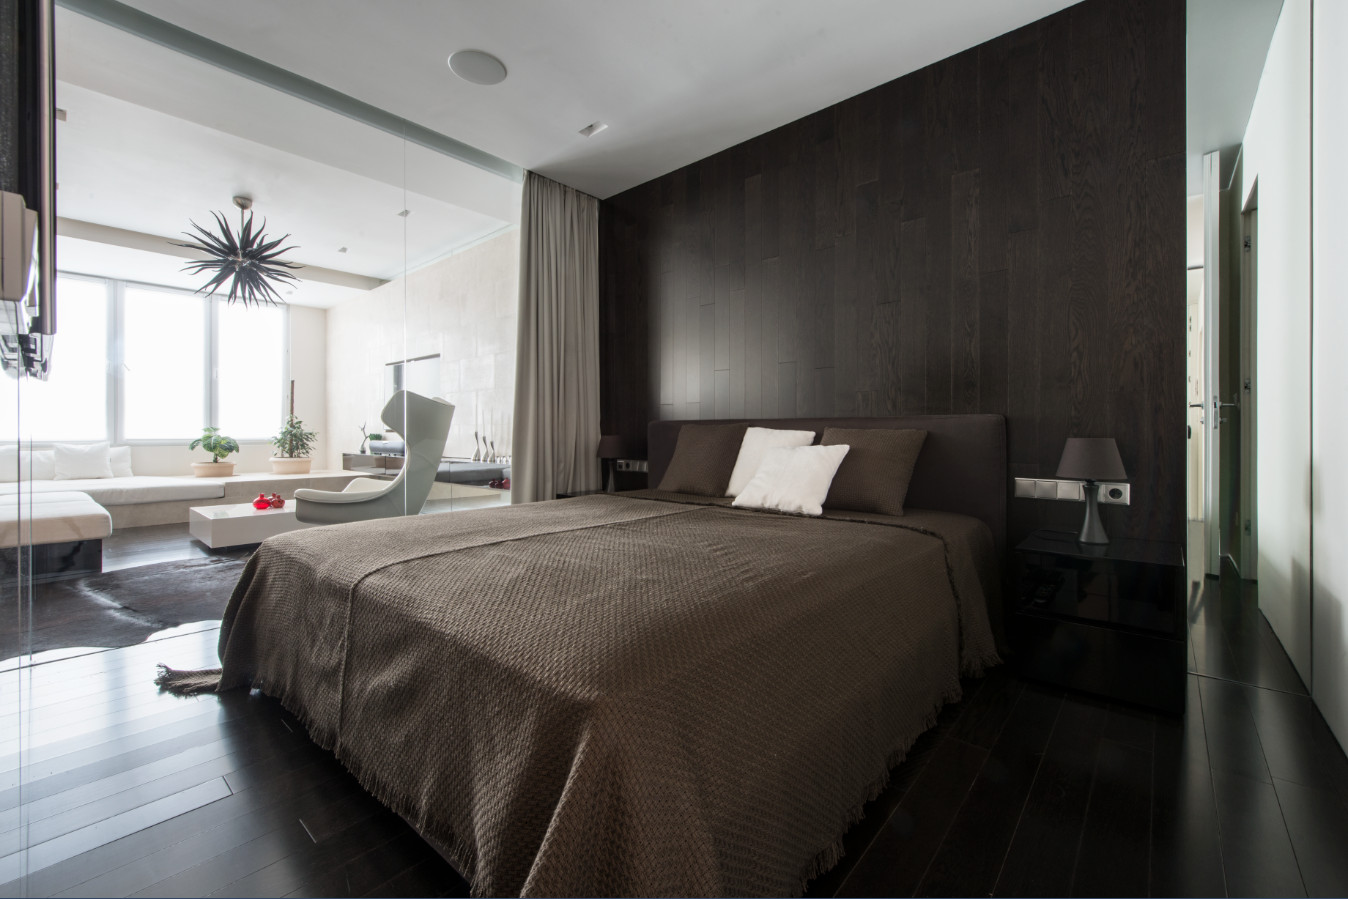 20 Small Bedroom Ideas That Will Leave You Speechless ...